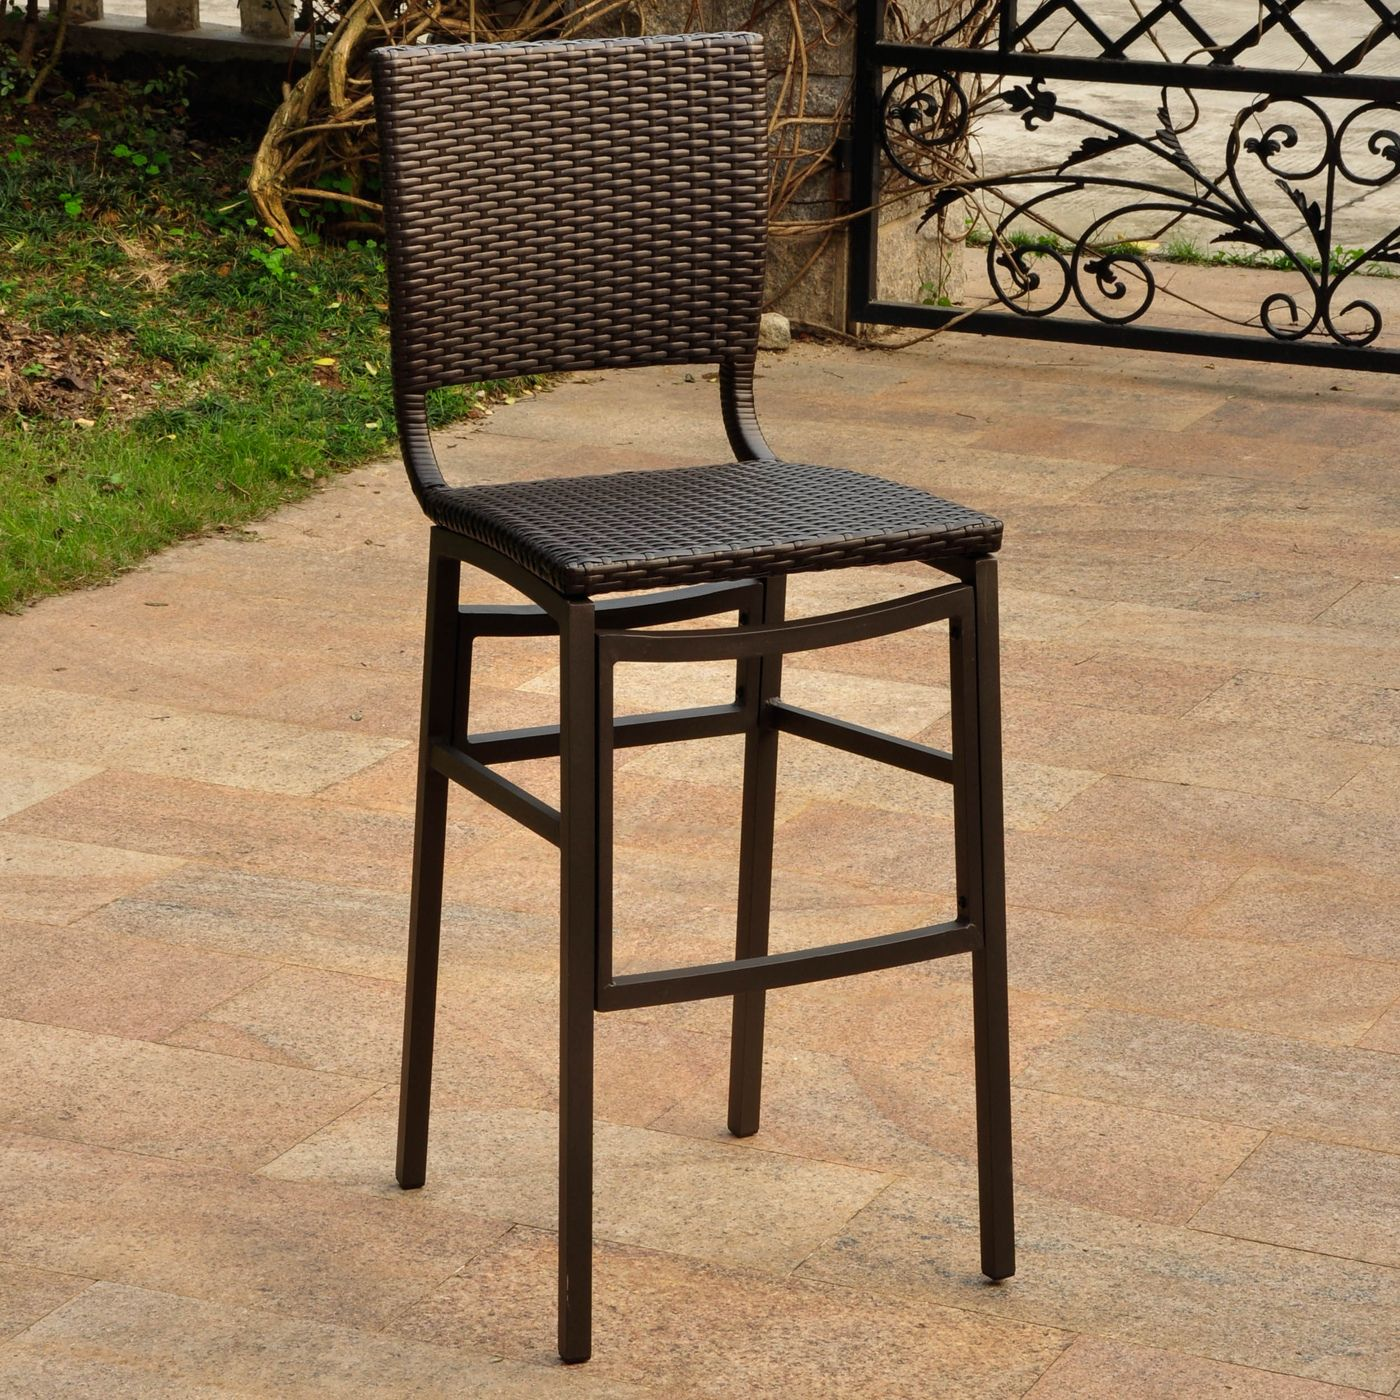 New Tall Outdoor Bar Chairs